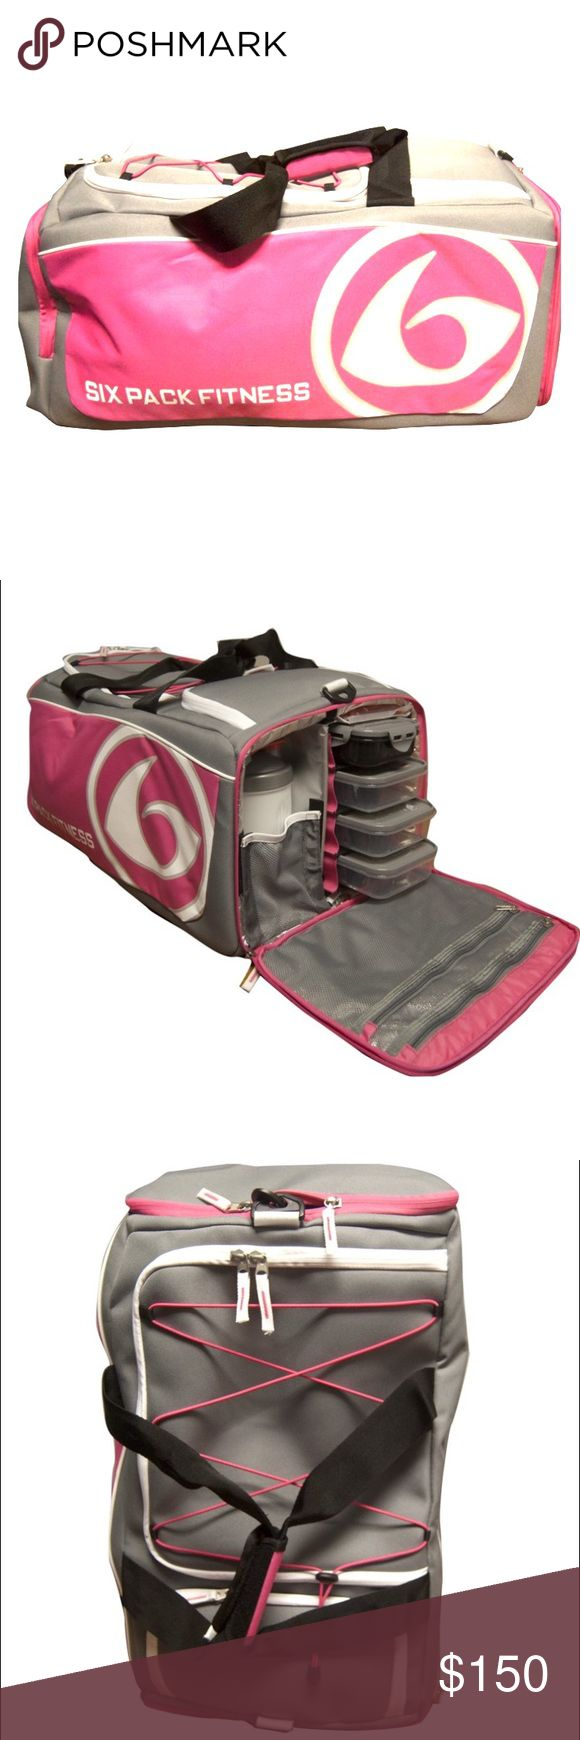 Pink & Grey Prodigy 300 Varsity Duffle 6 Pack Bag! Used once! Perfect Condition. Does not come with plastic food containers or ice packs. Deep main compartment holds clothing, workout gear & personal items, organizational pocket for smaller items. Zippered mesh door pocket.  Exterior bungee cord keeps outerwear secure and accessible, Ventilated side compartment with divider to store damp workout clothing  *shoe compartment  *External pocket  *Detachable shoulder shoulder or across-body…